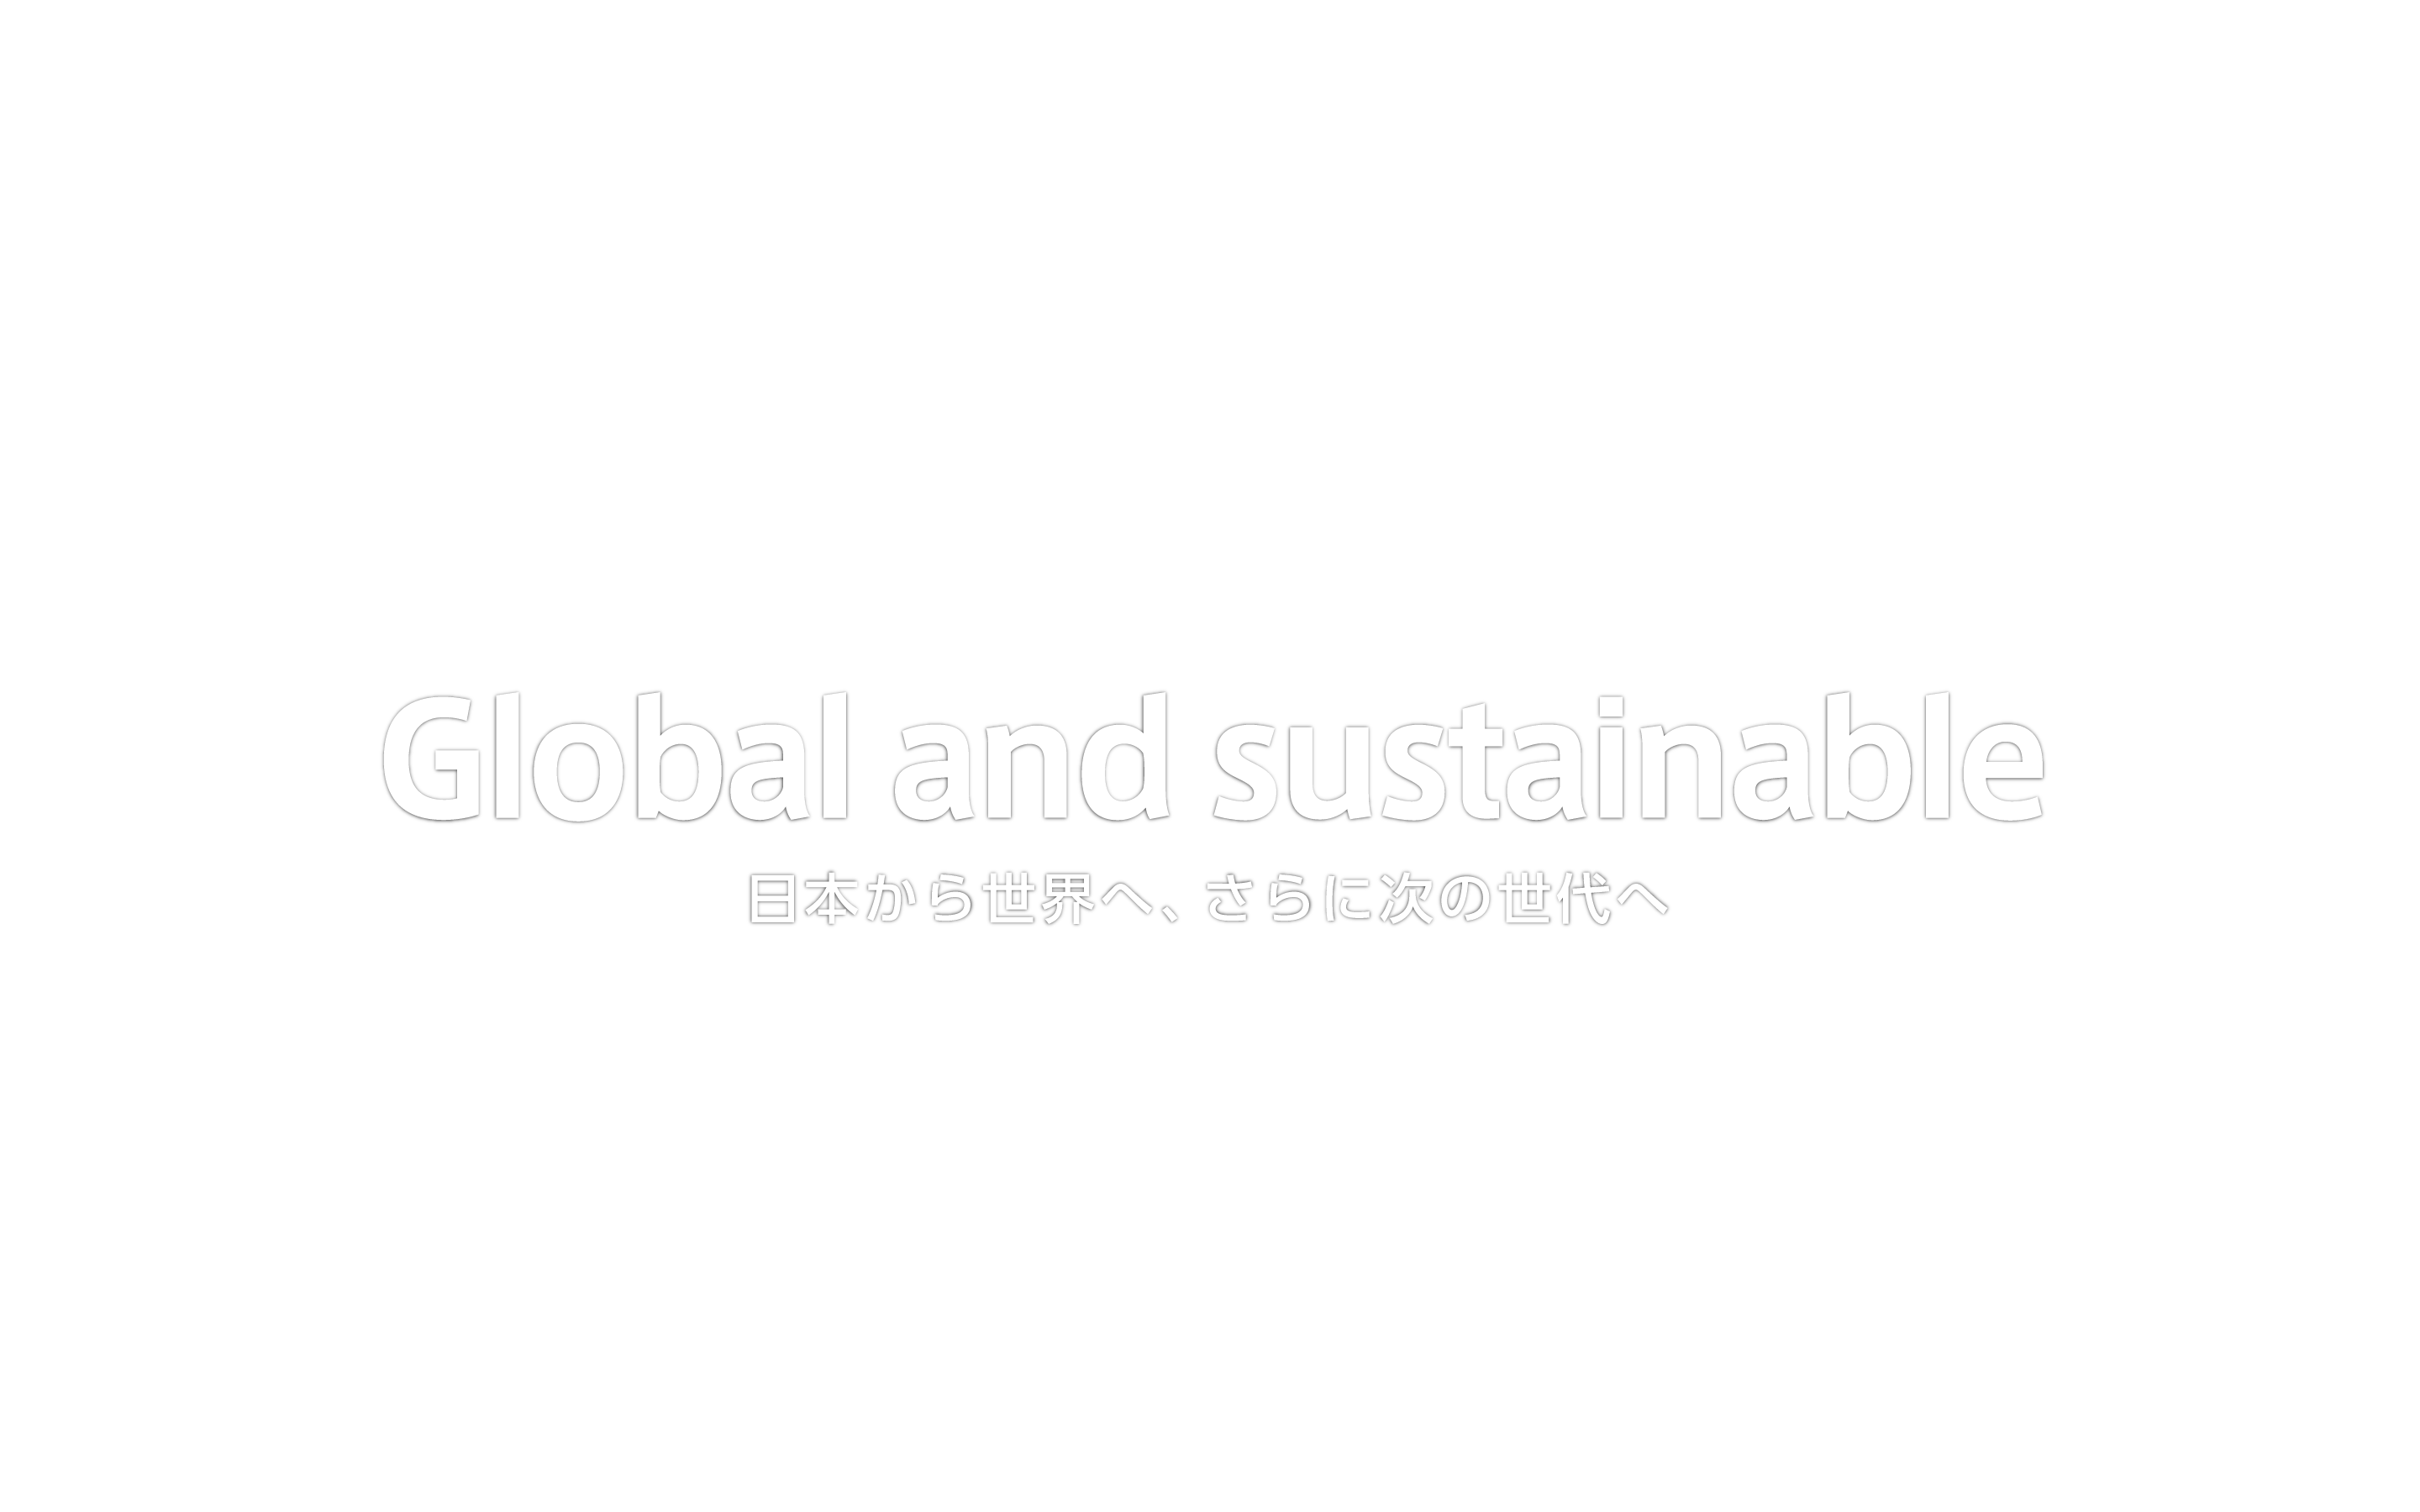 Global and sustainable 日本から世界へ、さらに次の世代へ